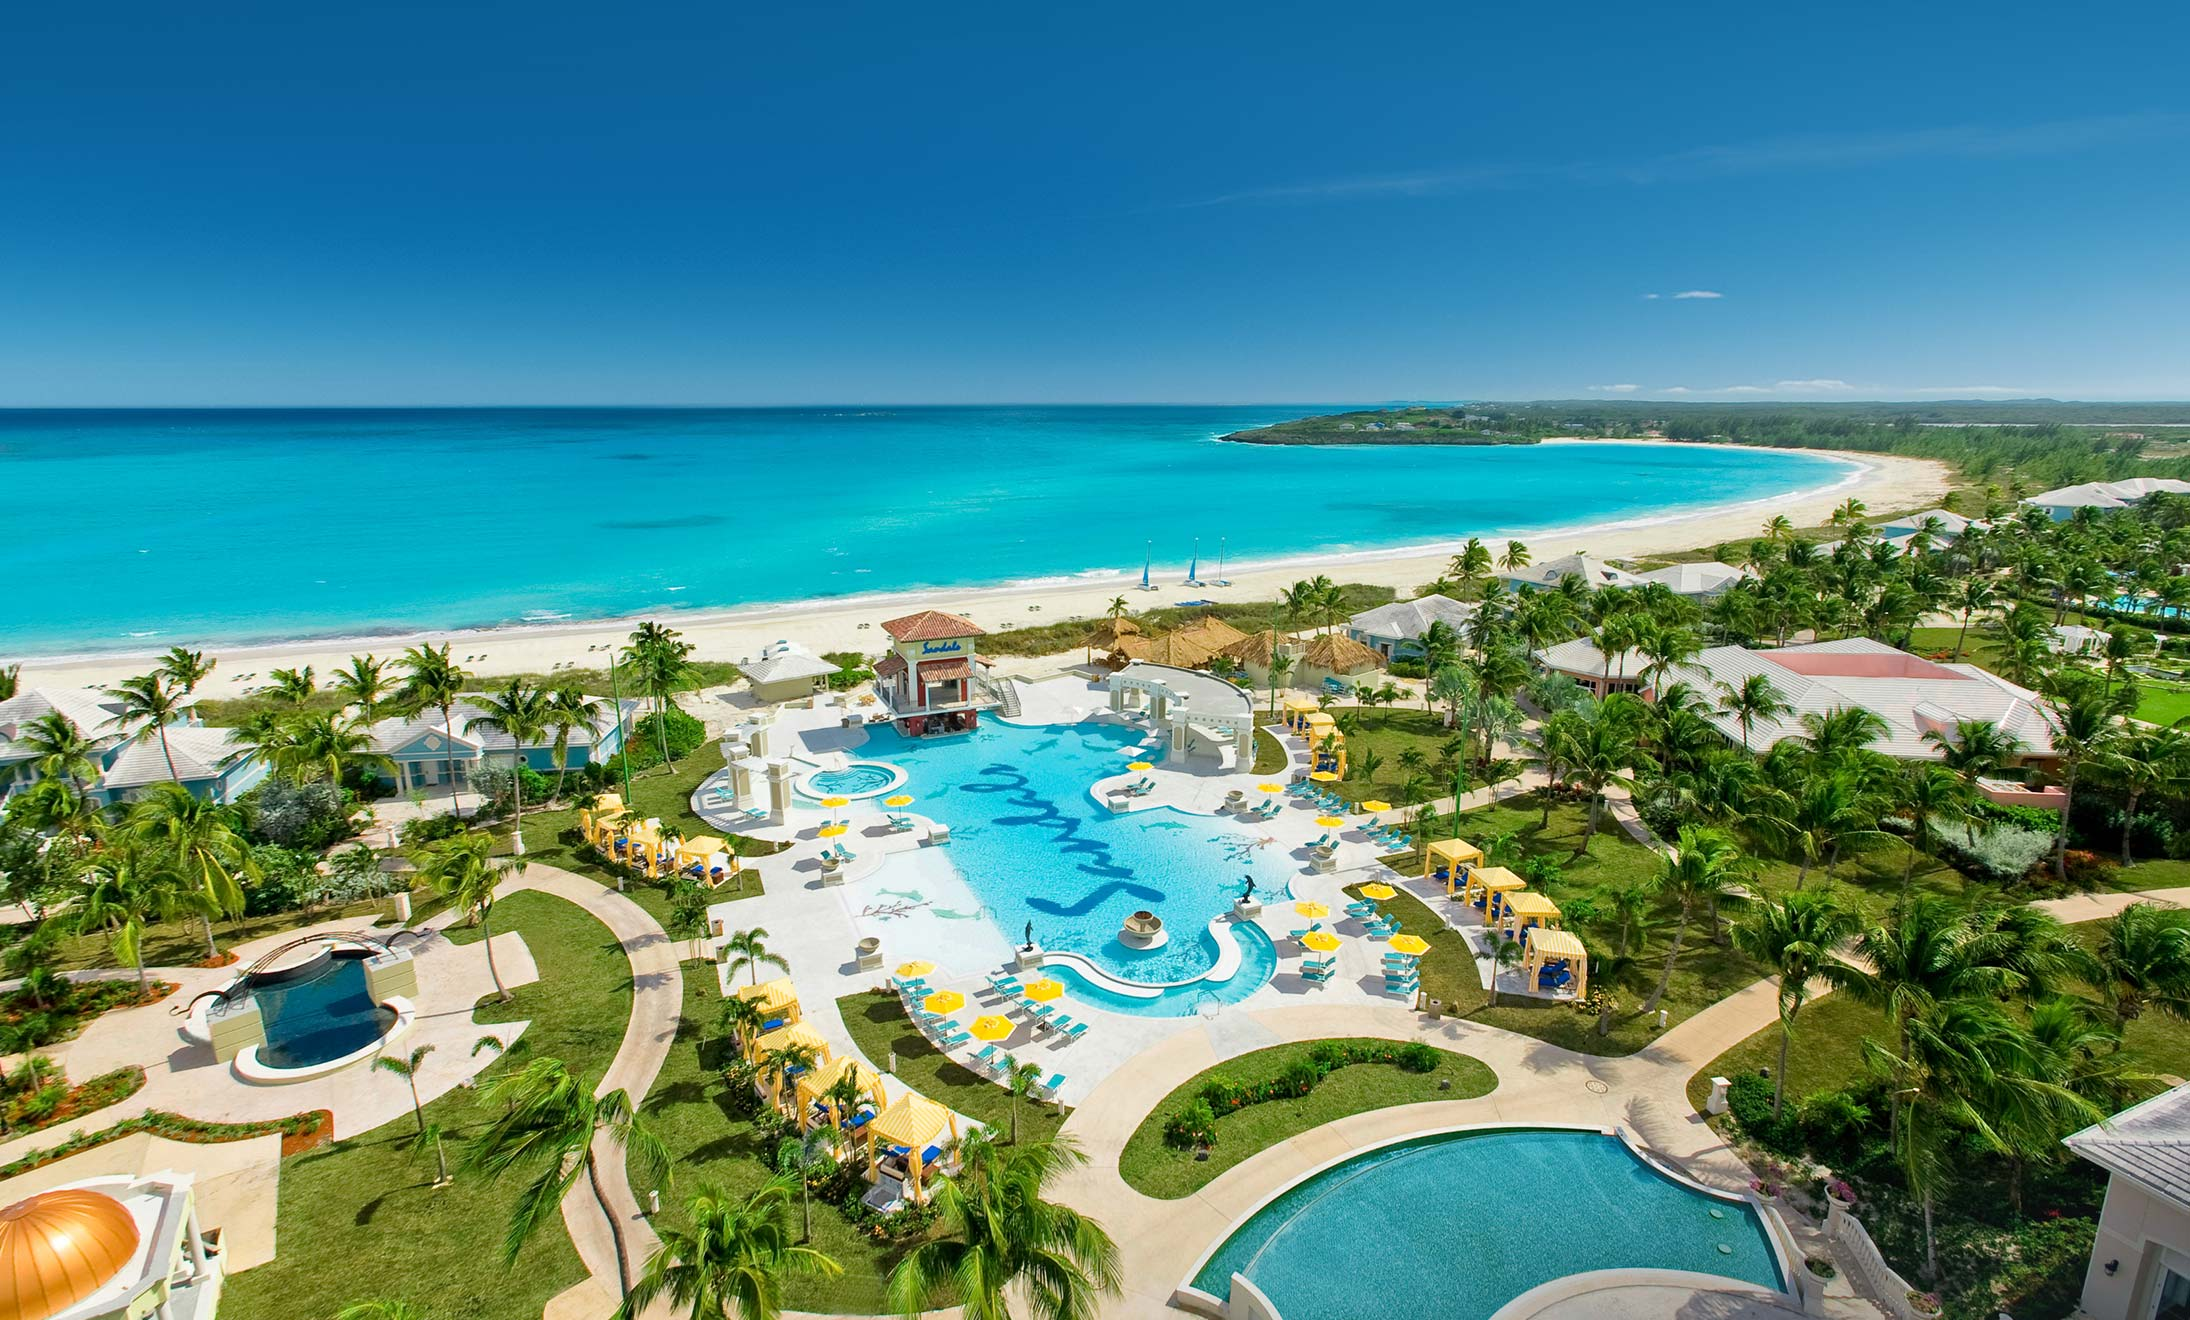 Caribbean In Vacations All Five Resorts Inclusive The Star Sandals kiwZTlOPuX